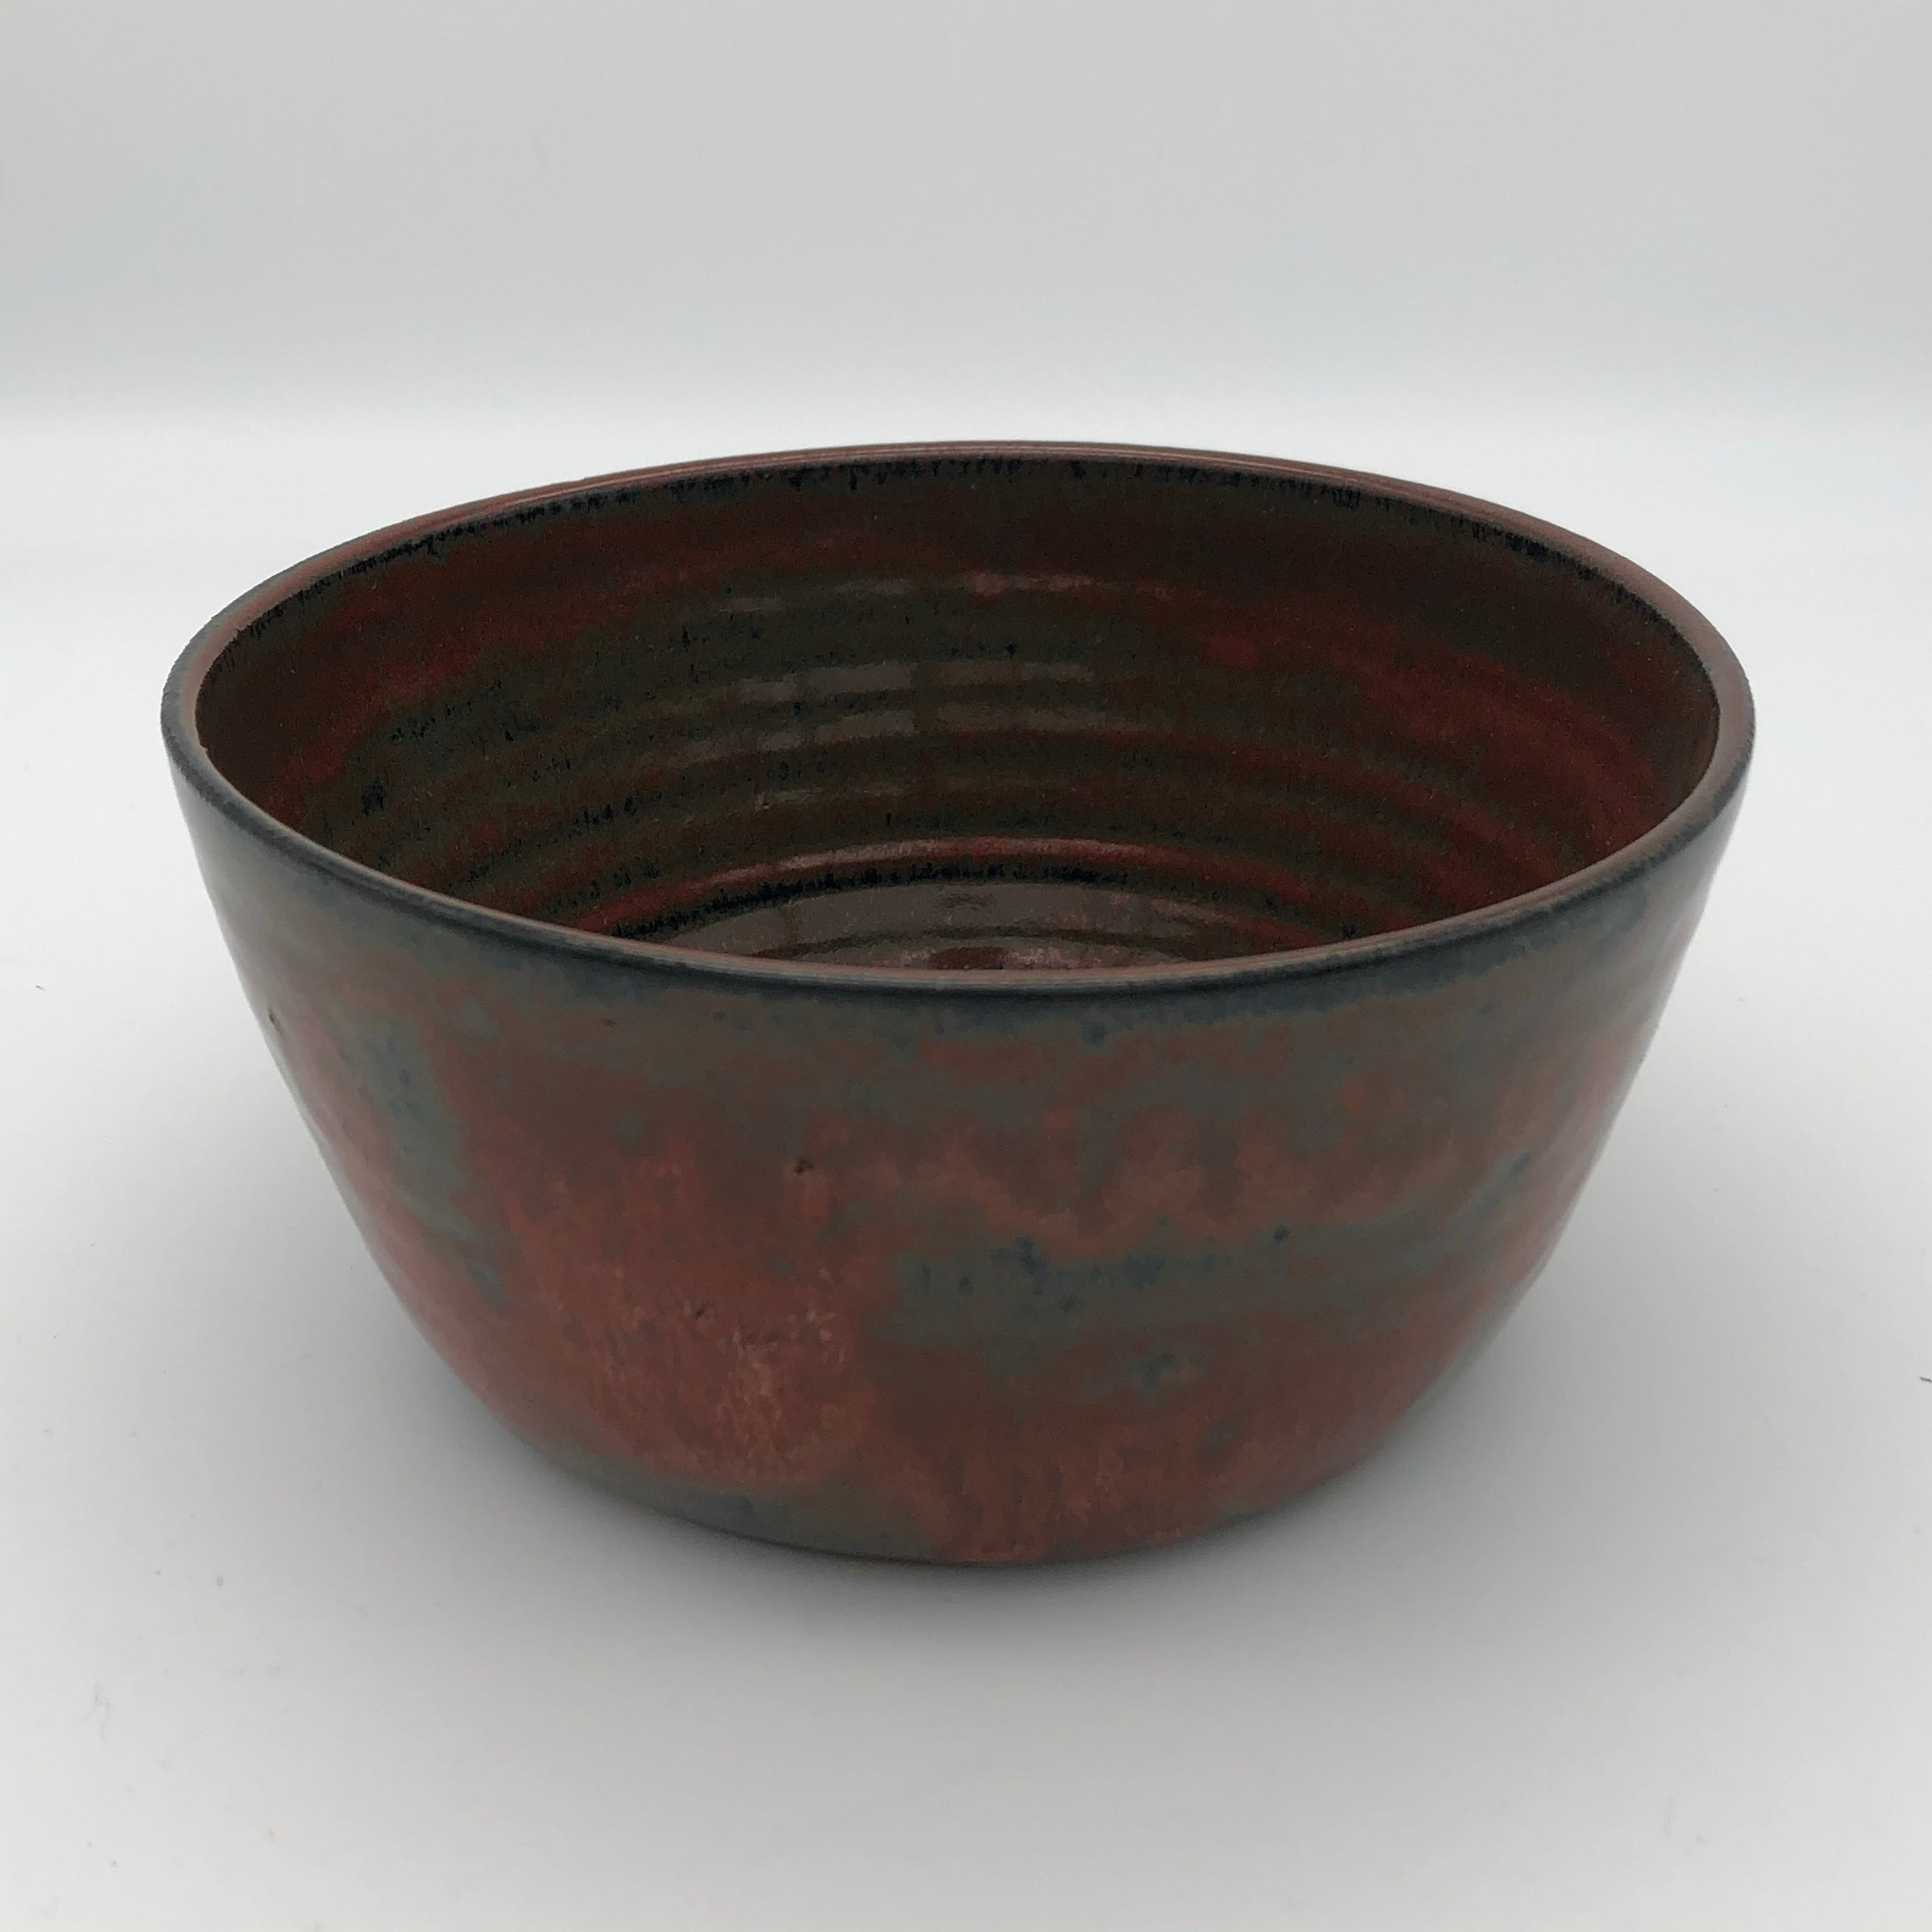 3 cup bowl in Ancient Jasper